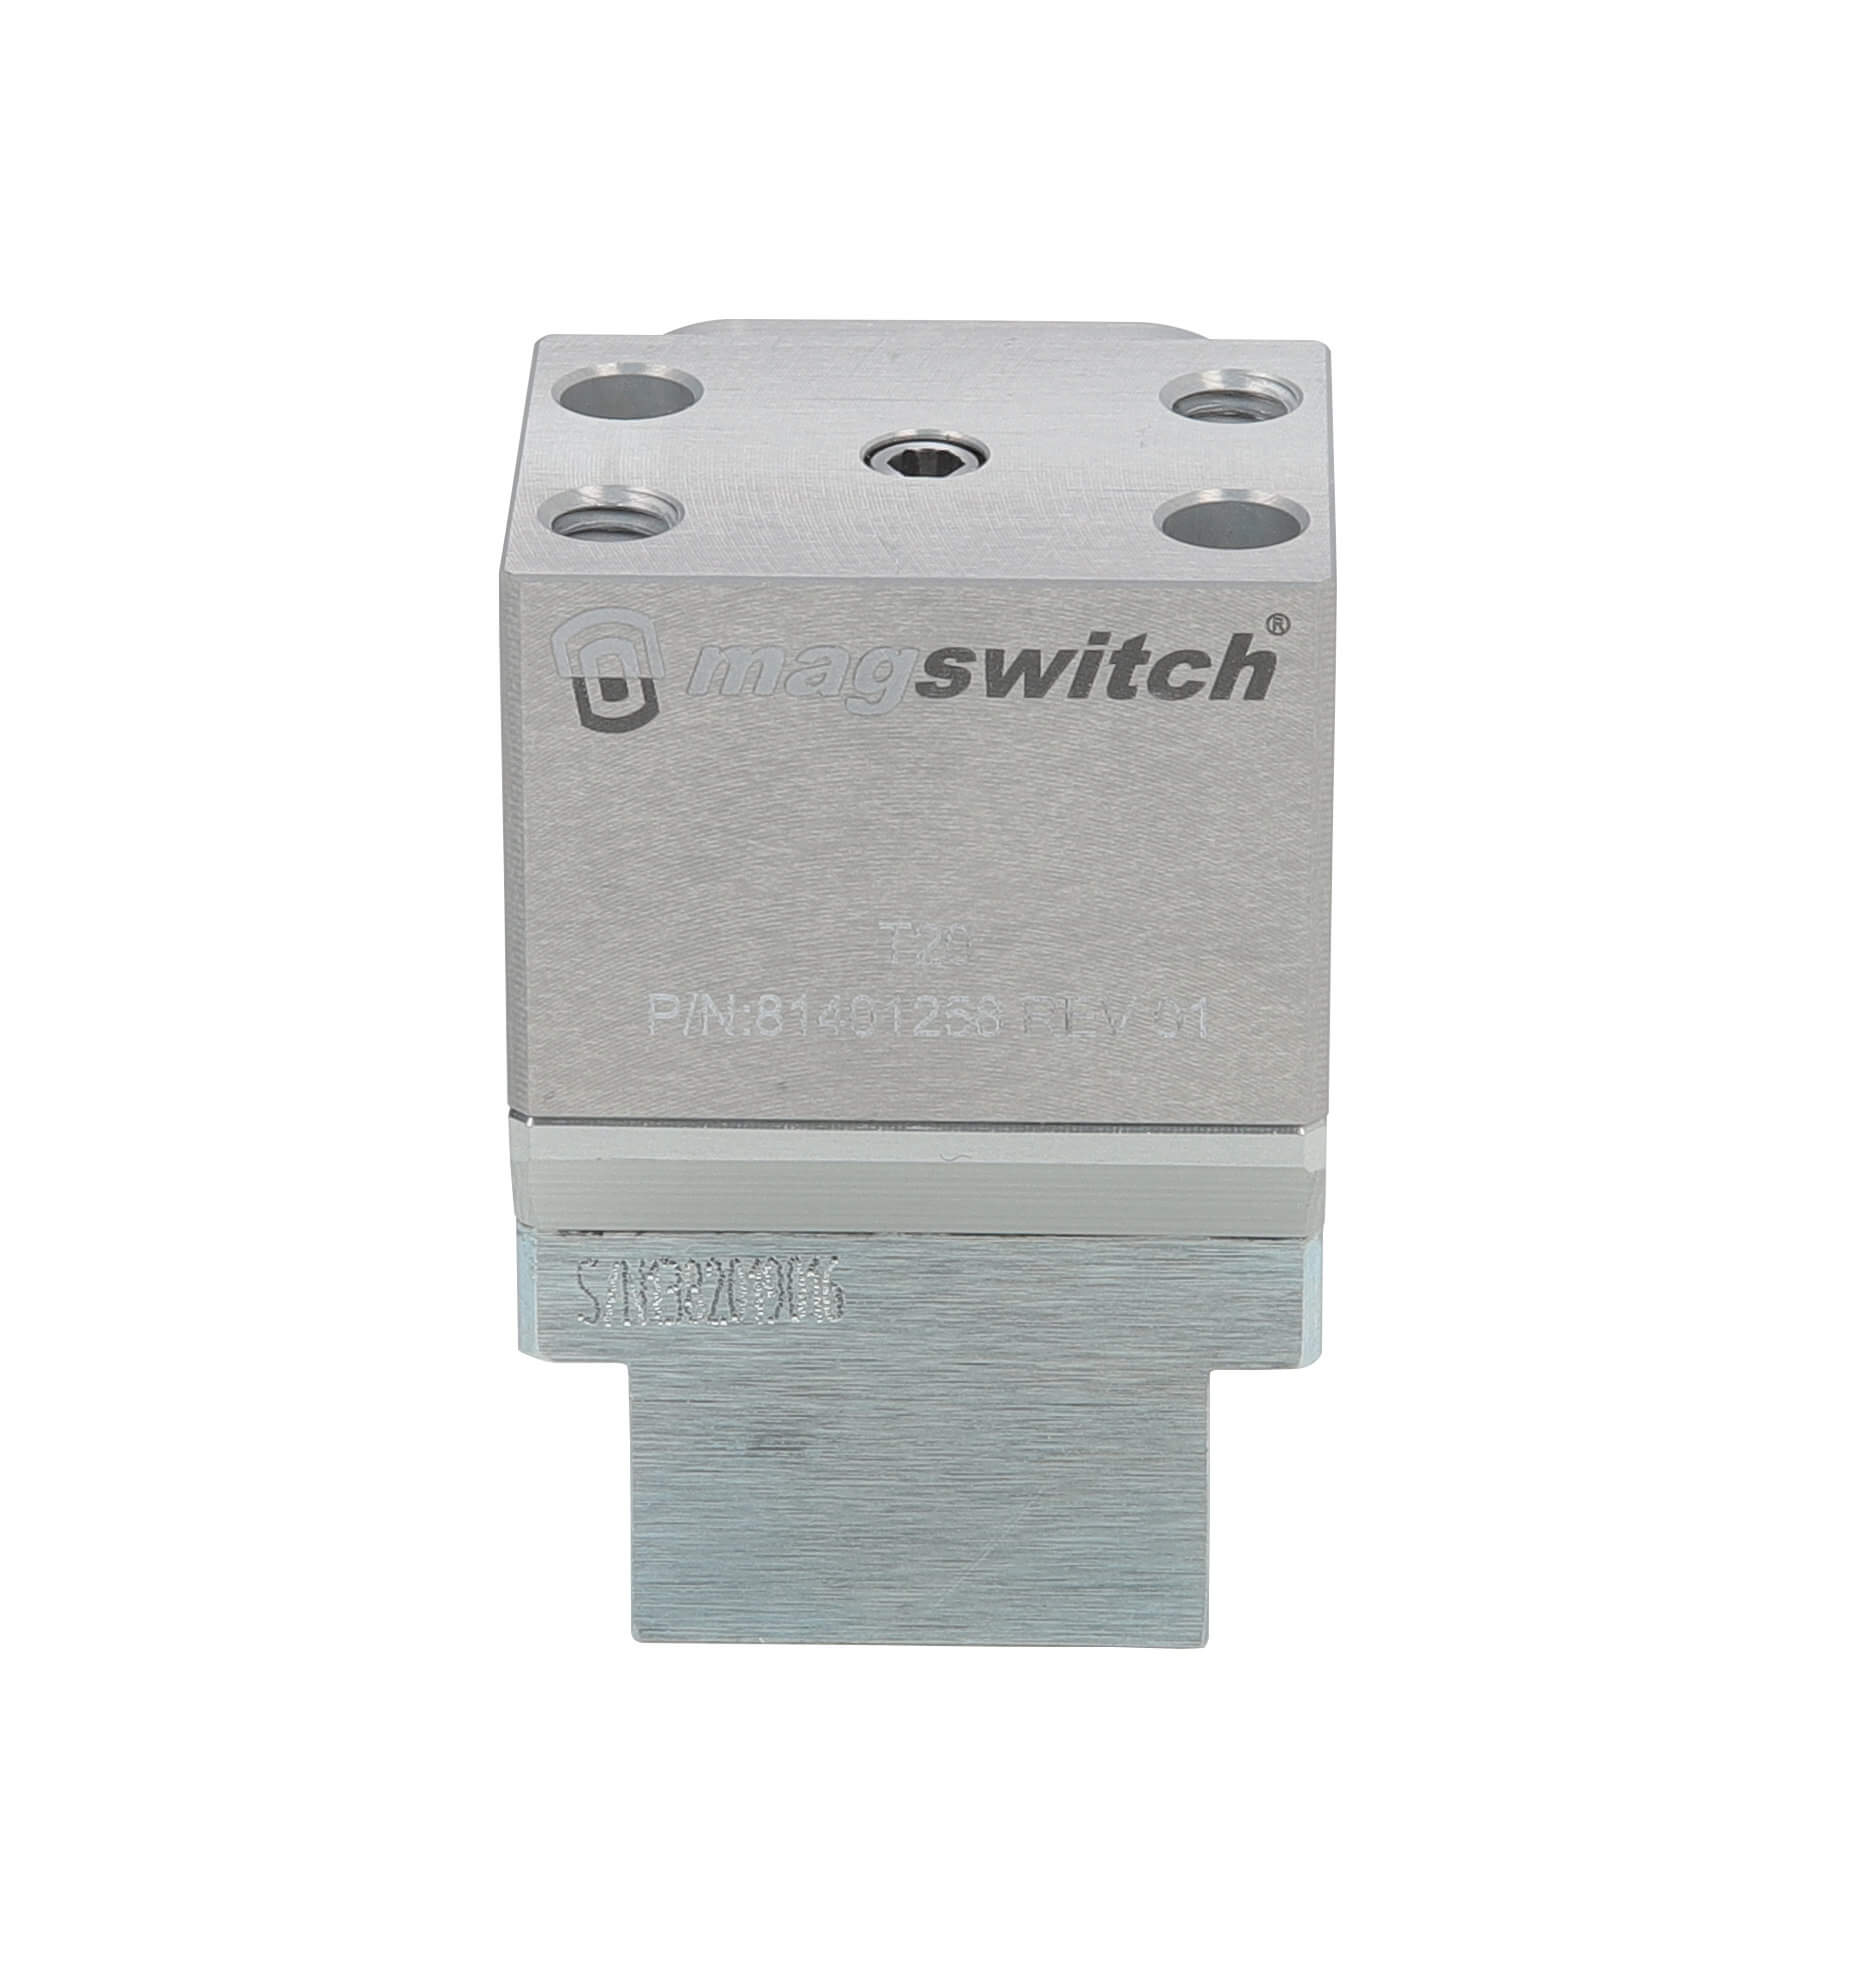 T20 Automation Magnet - 81401258   Magswitch Technology